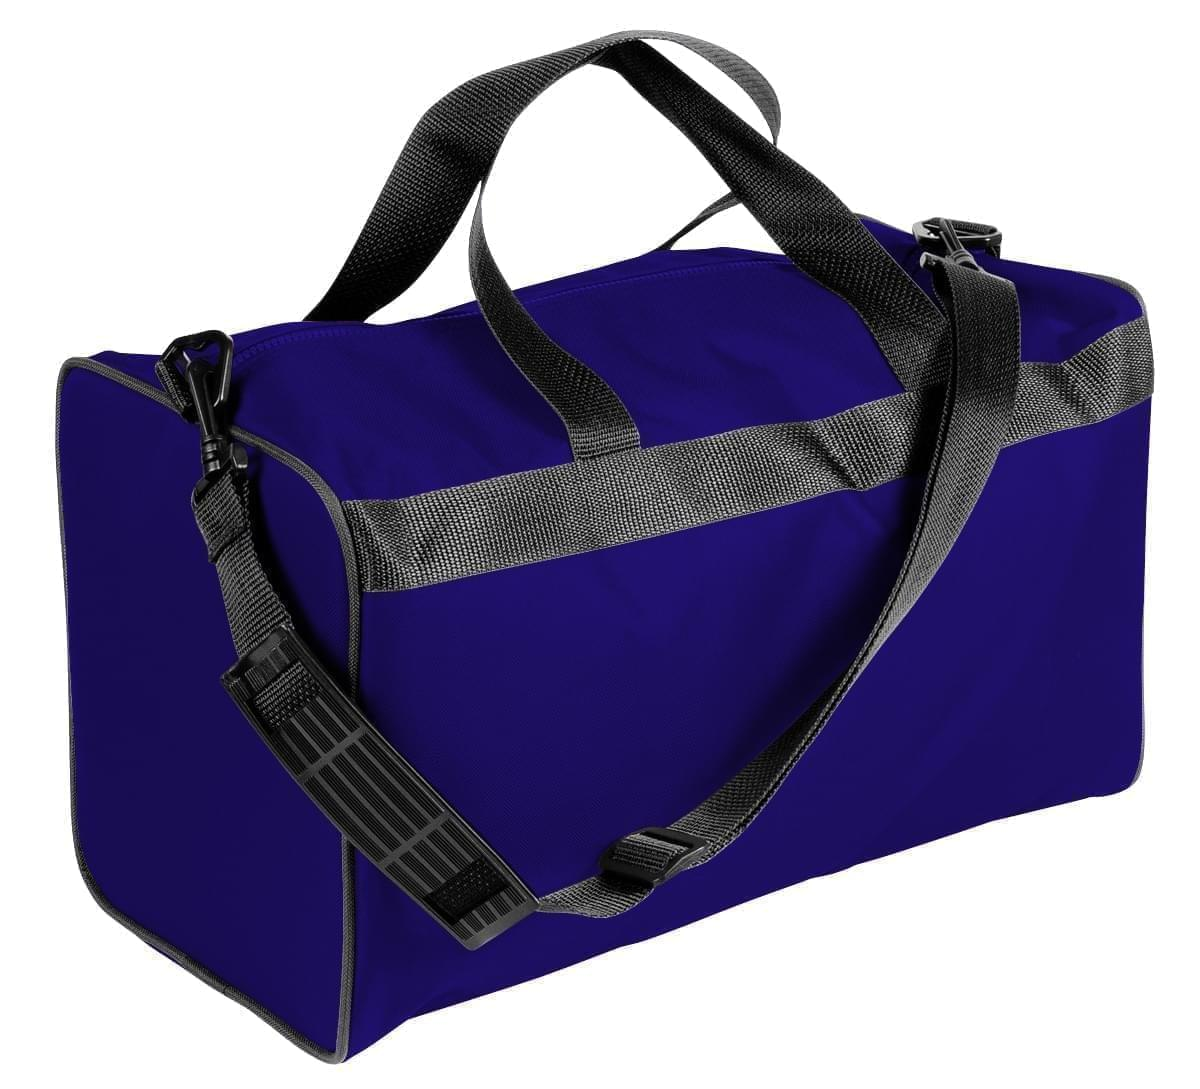 USA Made Nylon Poly Weekend Duffles, Purple-Black, WLKX31AAYR